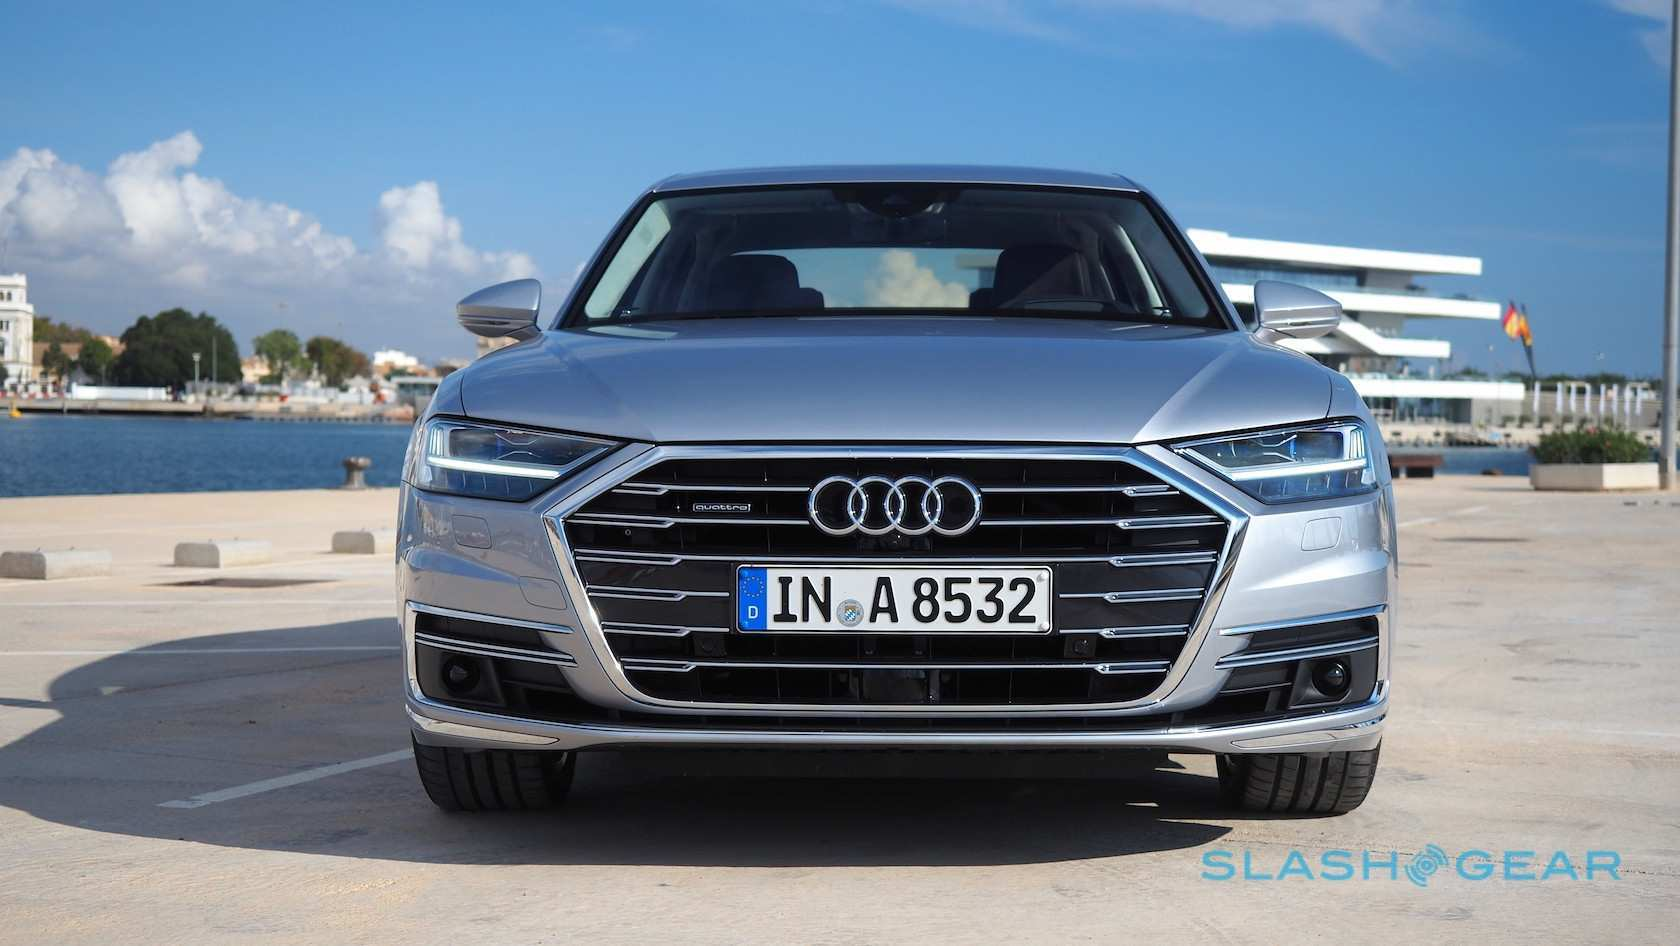 39 New 2019 Audi A8 L In Usa Exterior And Interior